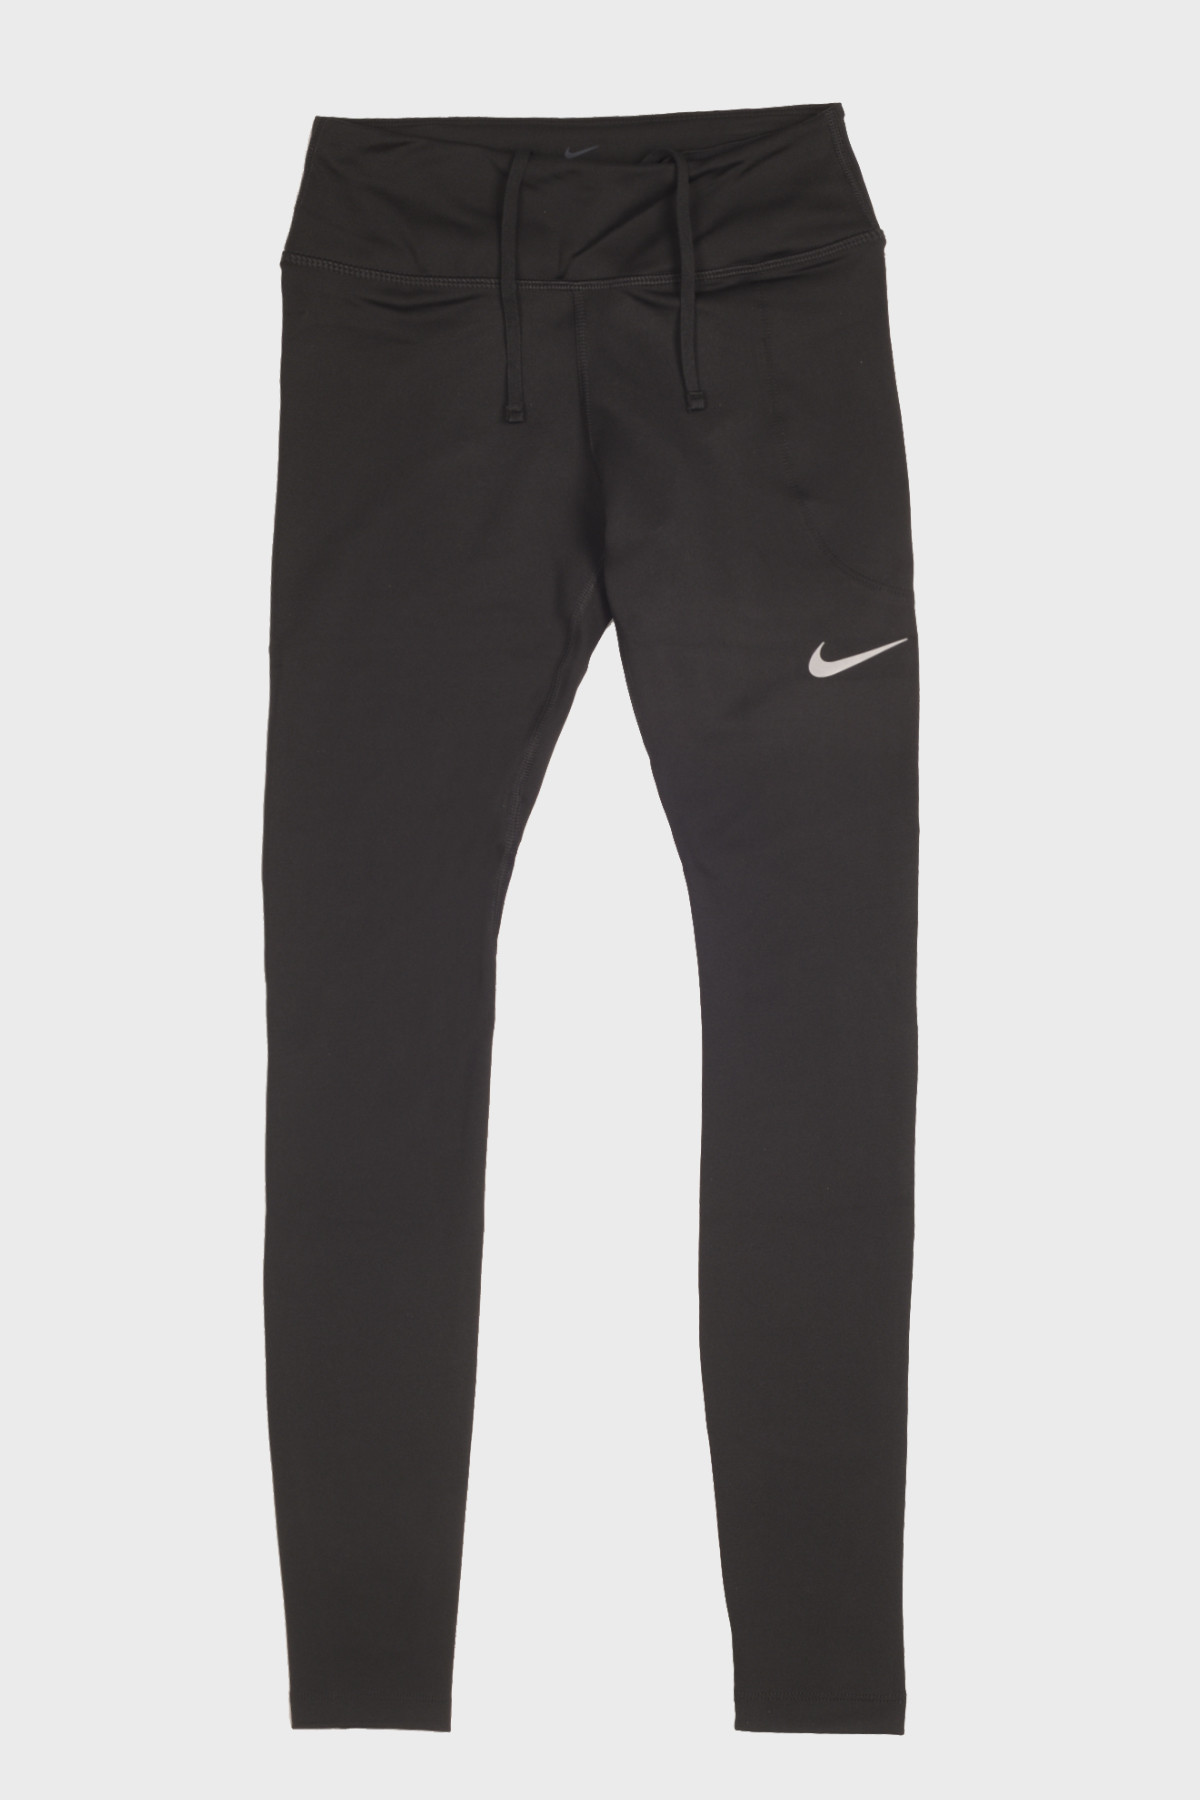 NIKE W - W FAST TIGHT - BLACK